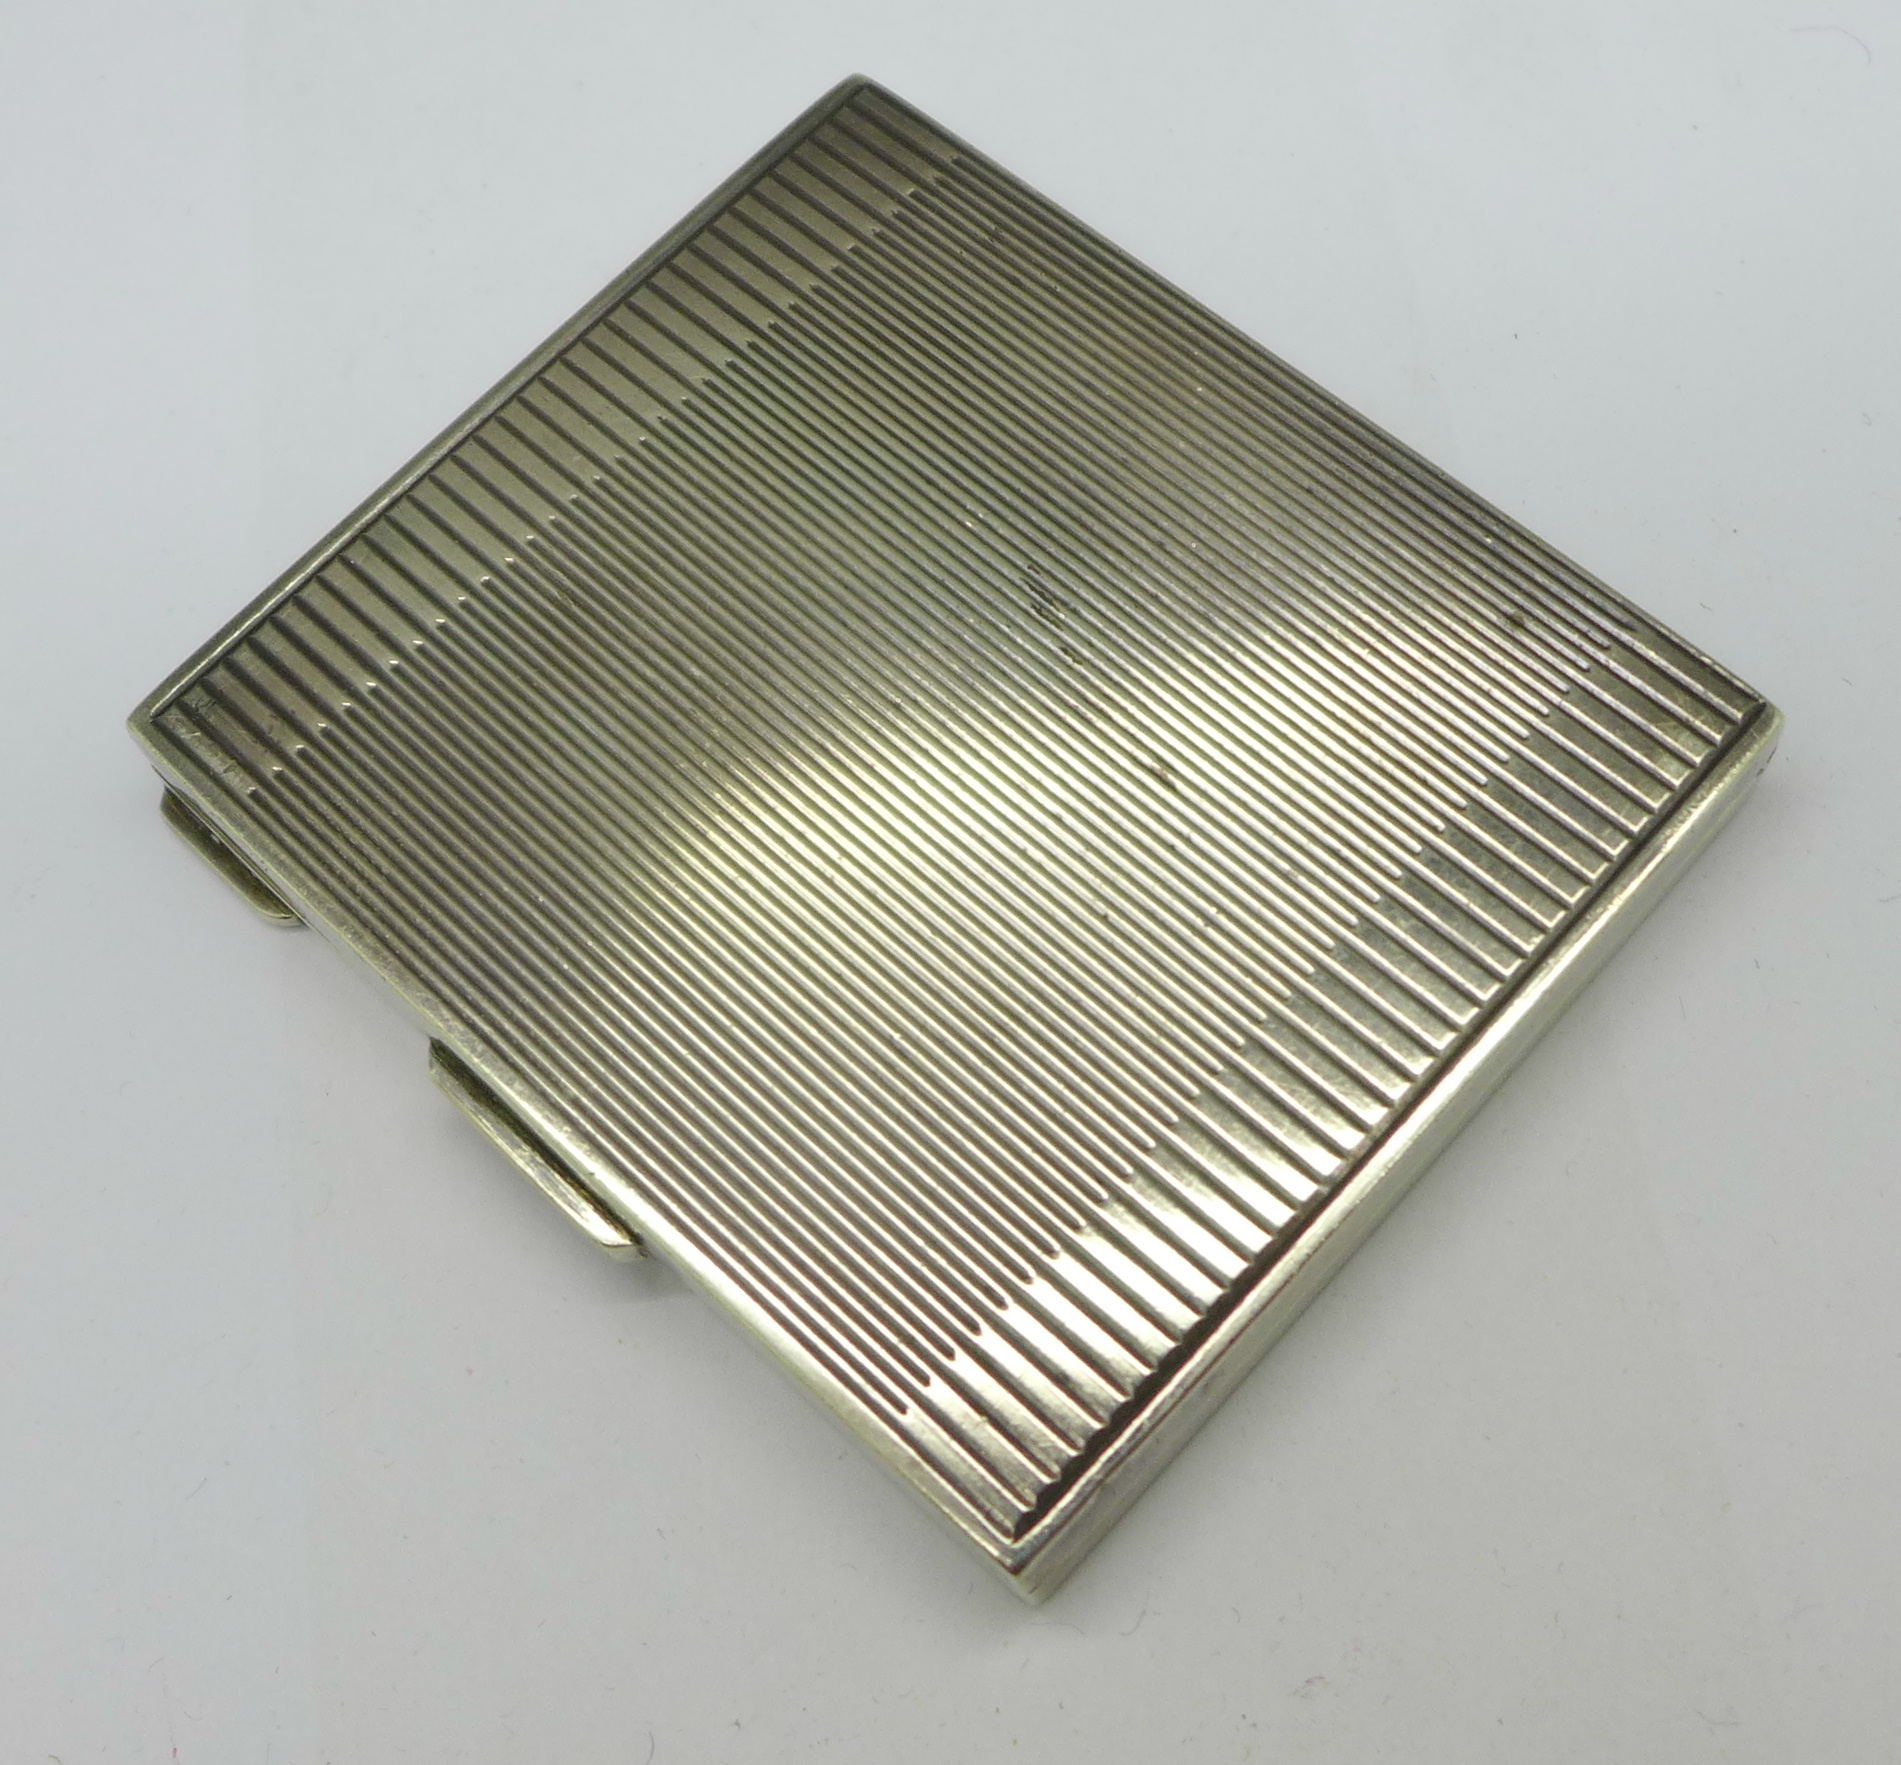 An Art Deco silver compact, London 1945, 80g - Image 2 of 5